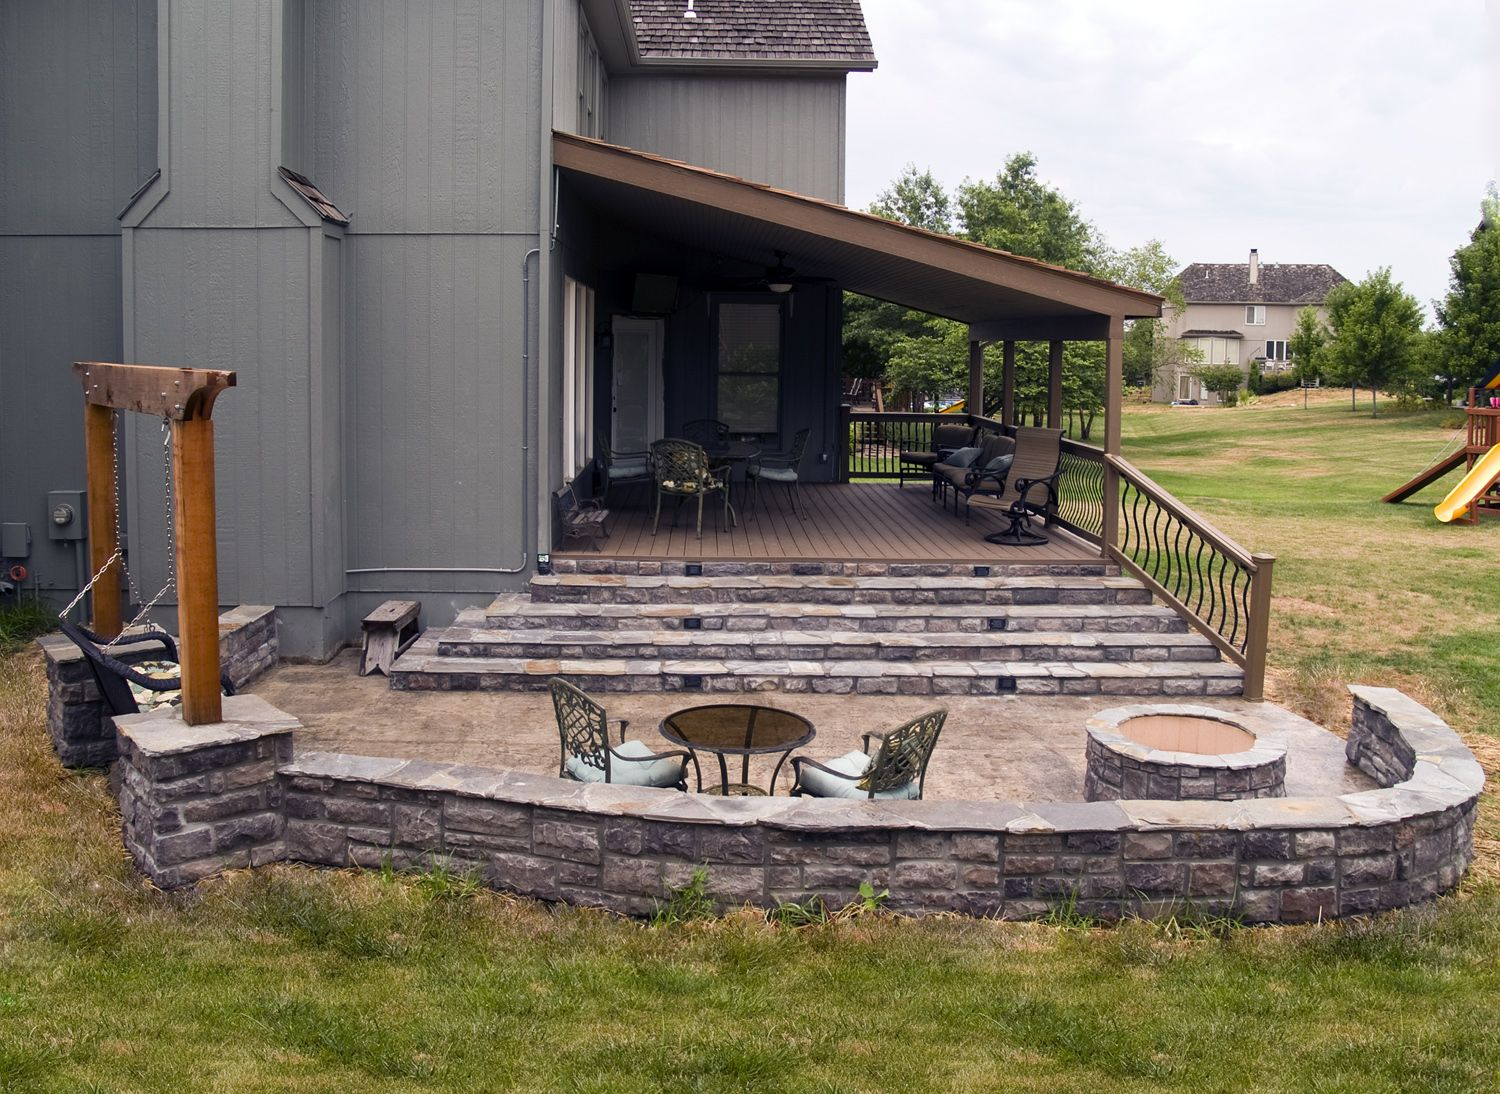 pictures of covered patios | Covered Patios And Decks Deck ...